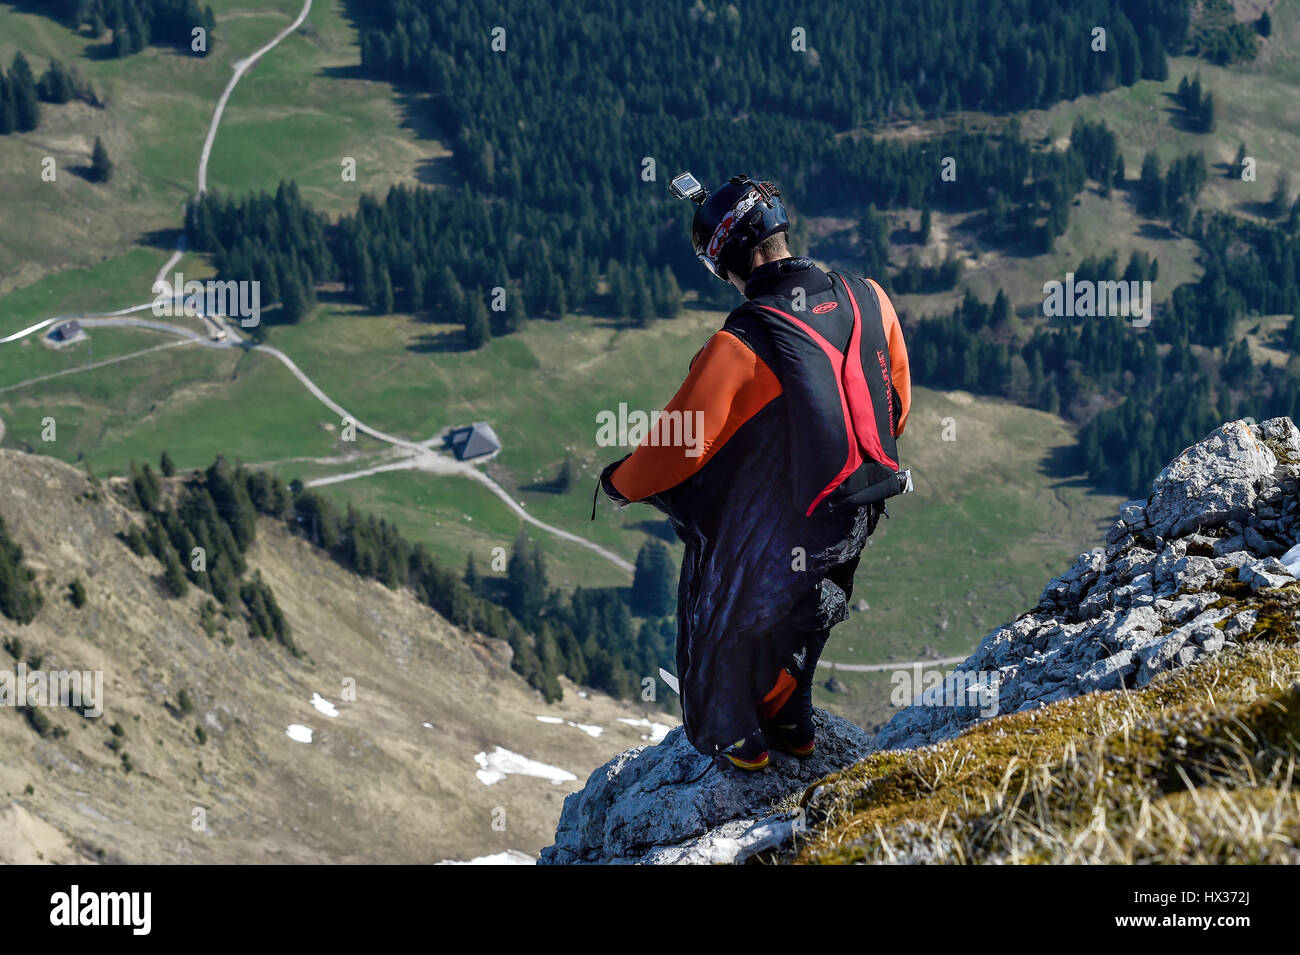 Base jumper with wingsuit at startup, Pilatus, Lucerne, Switzerland - Stock Image